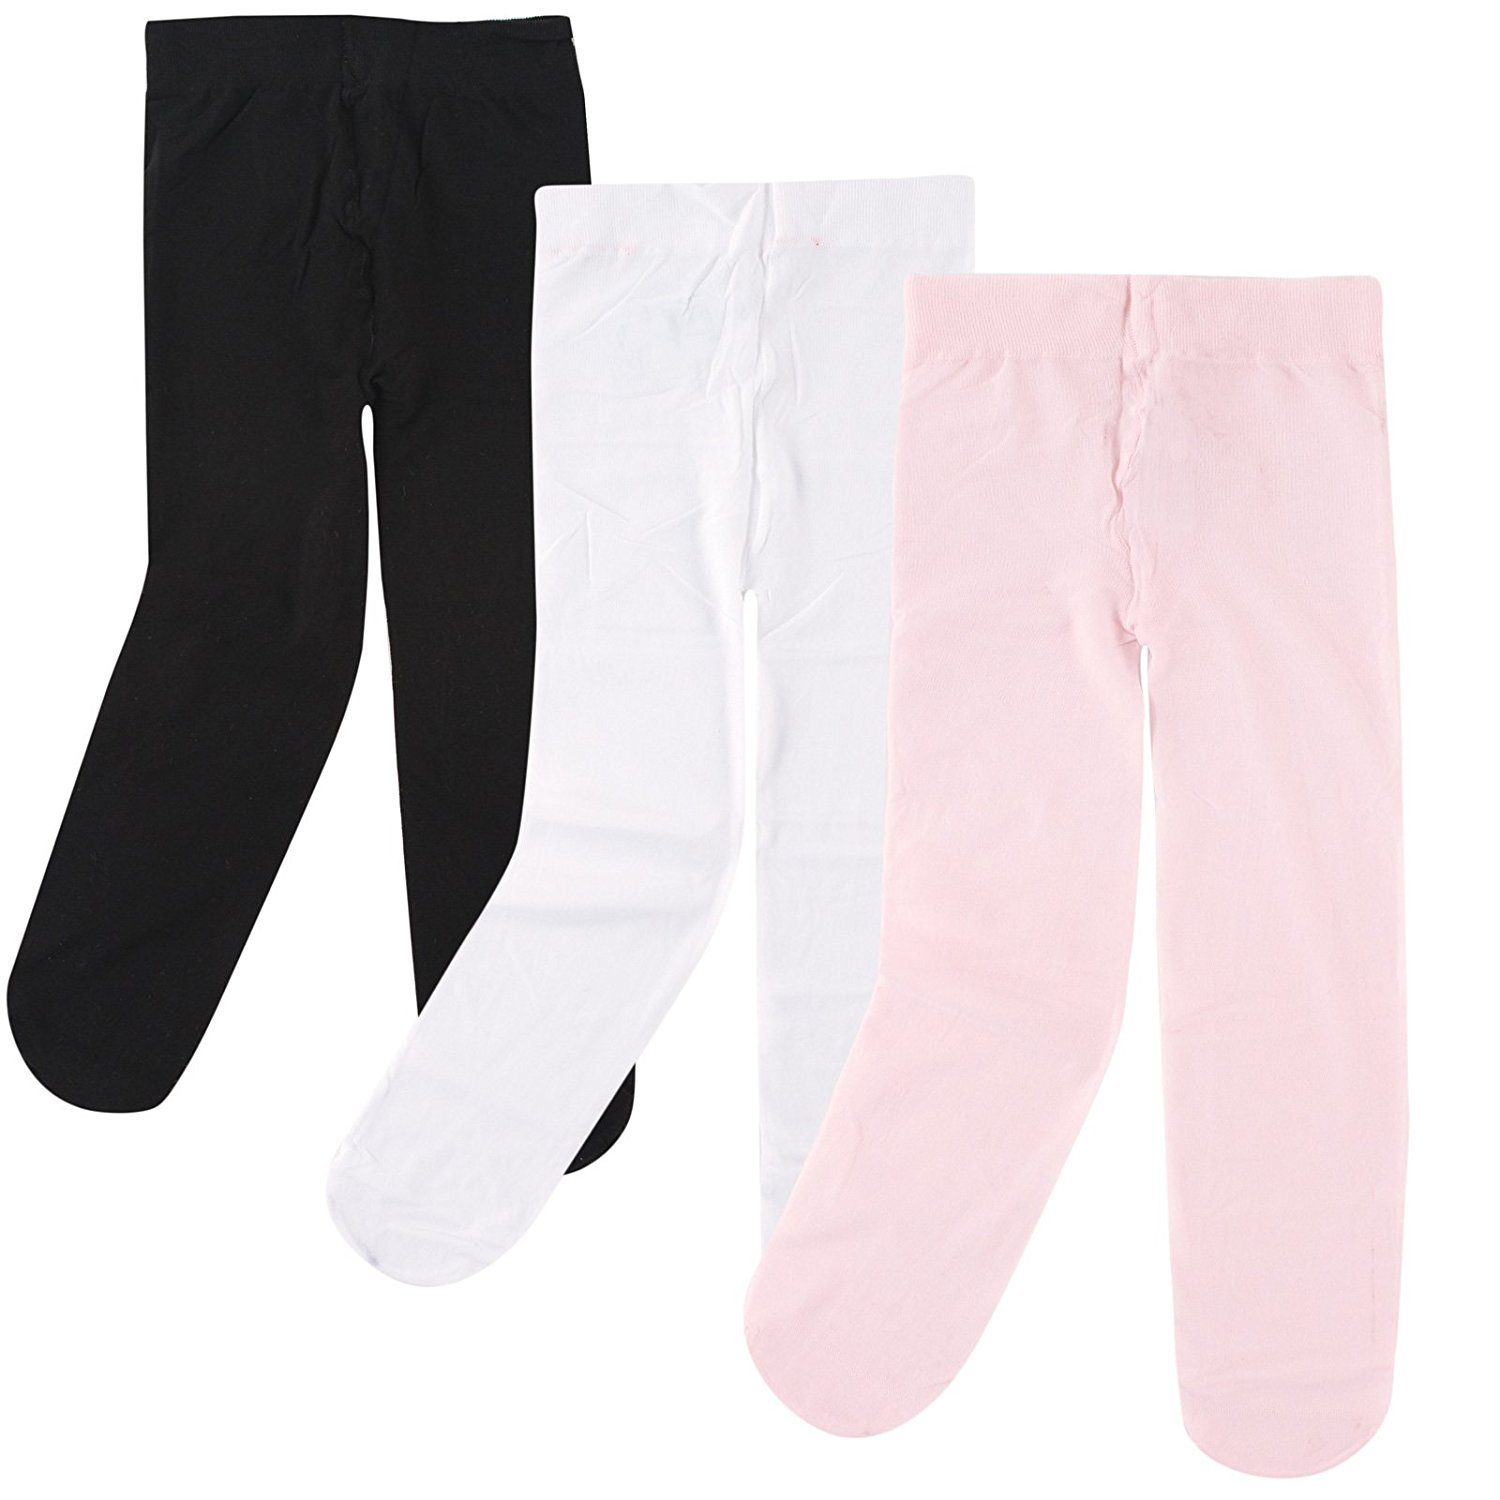 38b18bcdac0 Get Quotations · Luvable Friends Baby Girls  Nylon Tights